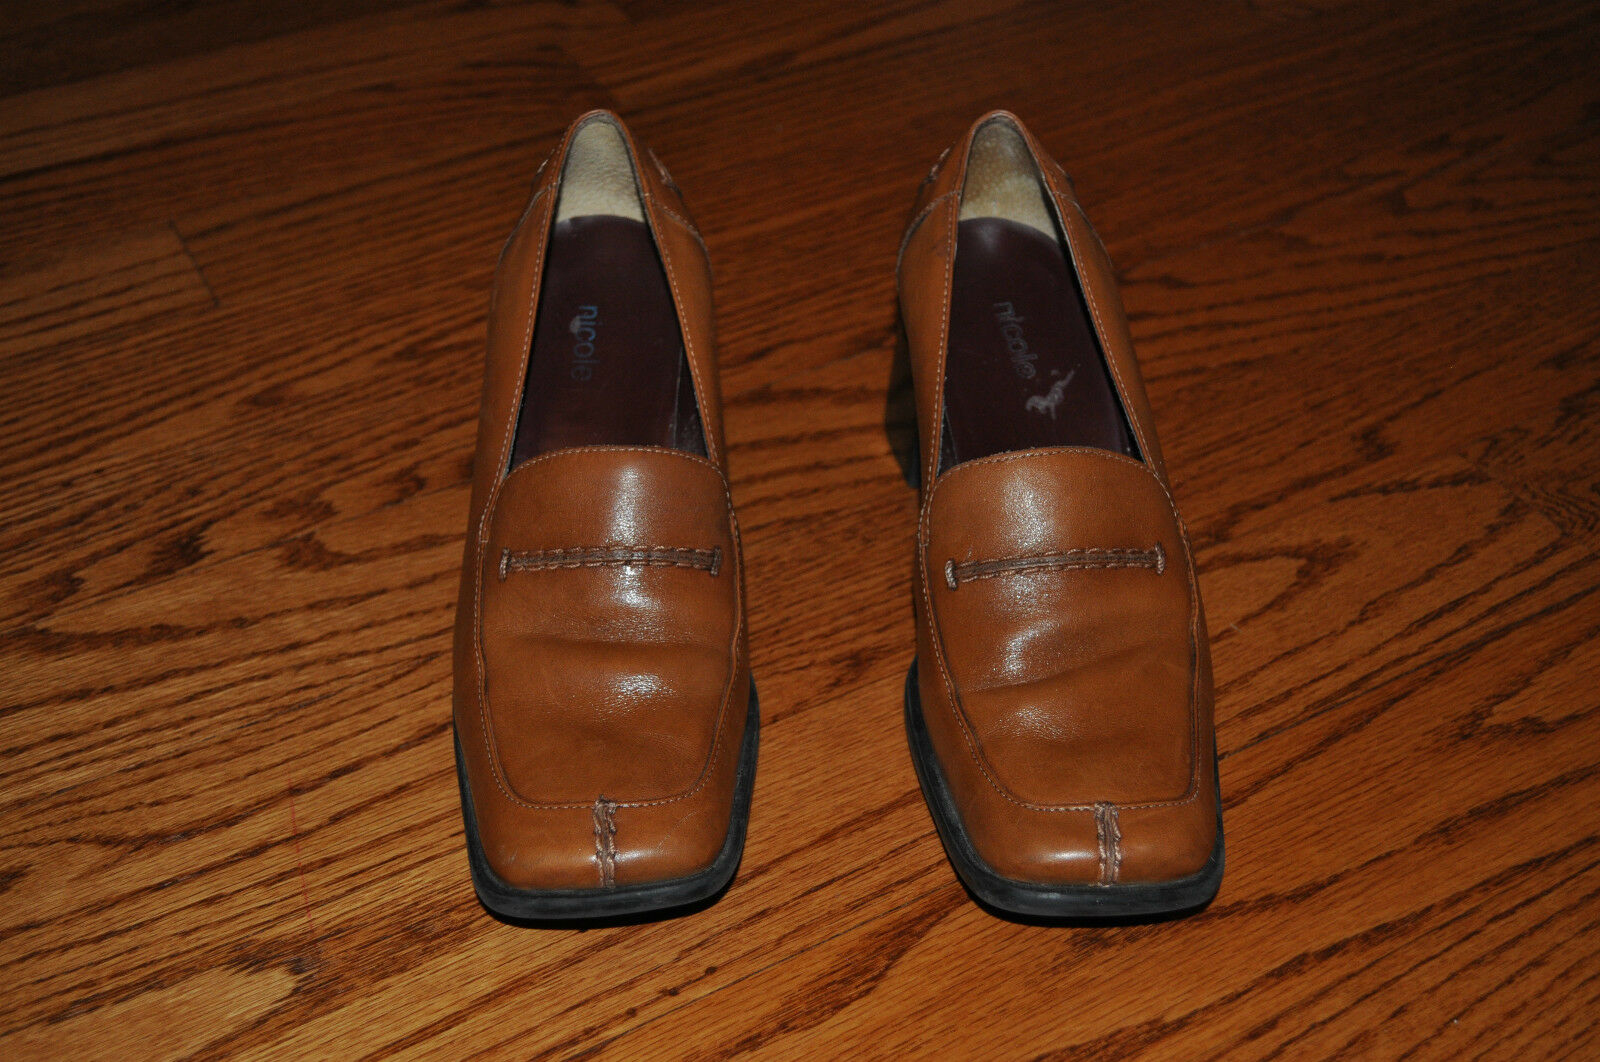 Womens NICOLE Brown Leather shoes Heels Size 7.5 M MADE IN BRAZIL